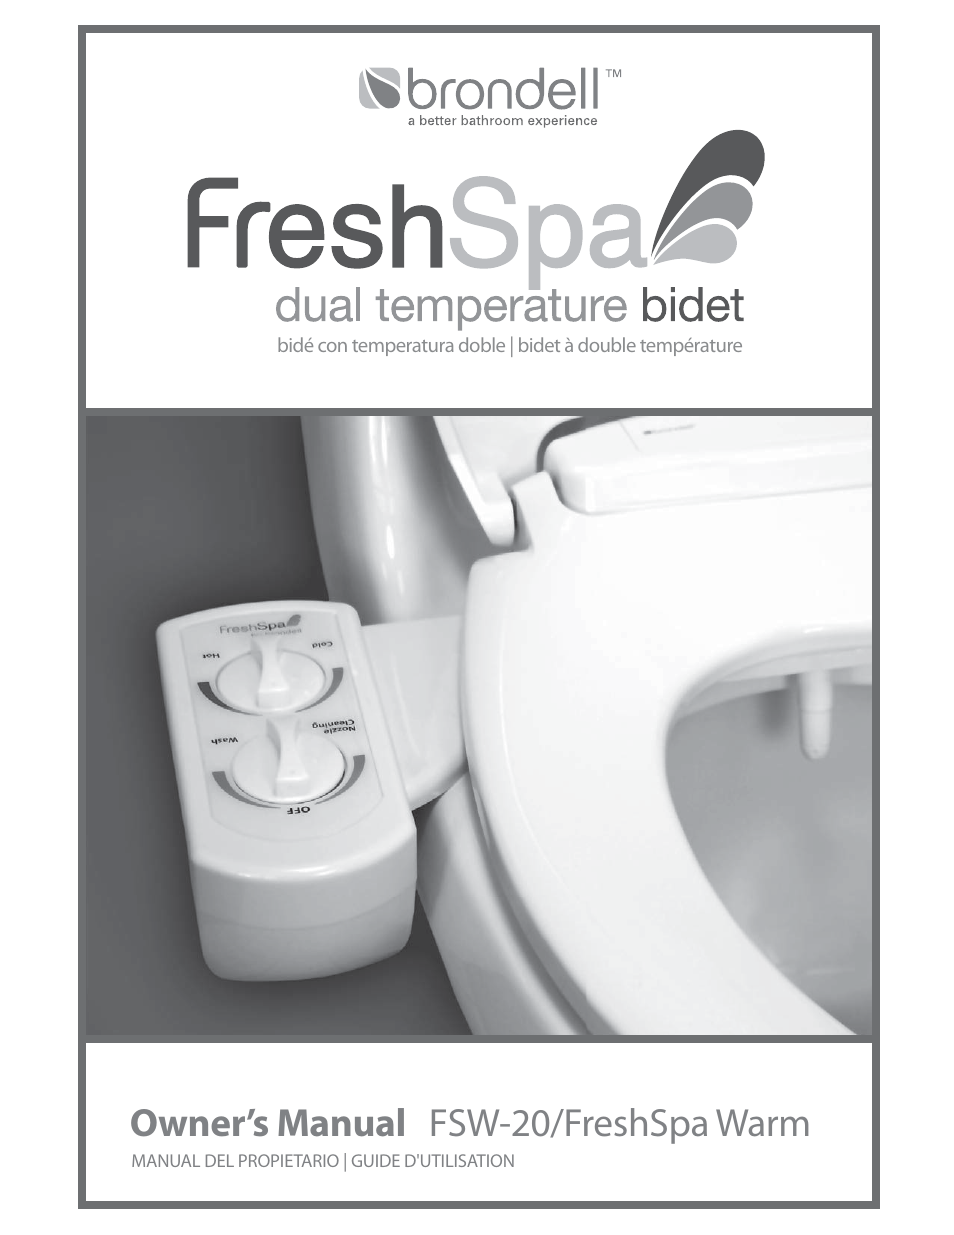 Sensational Brondell Freshspa Dual Temperature Bidet User Manual 52 Pages Gmtry Best Dining Table And Chair Ideas Images Gmtryco